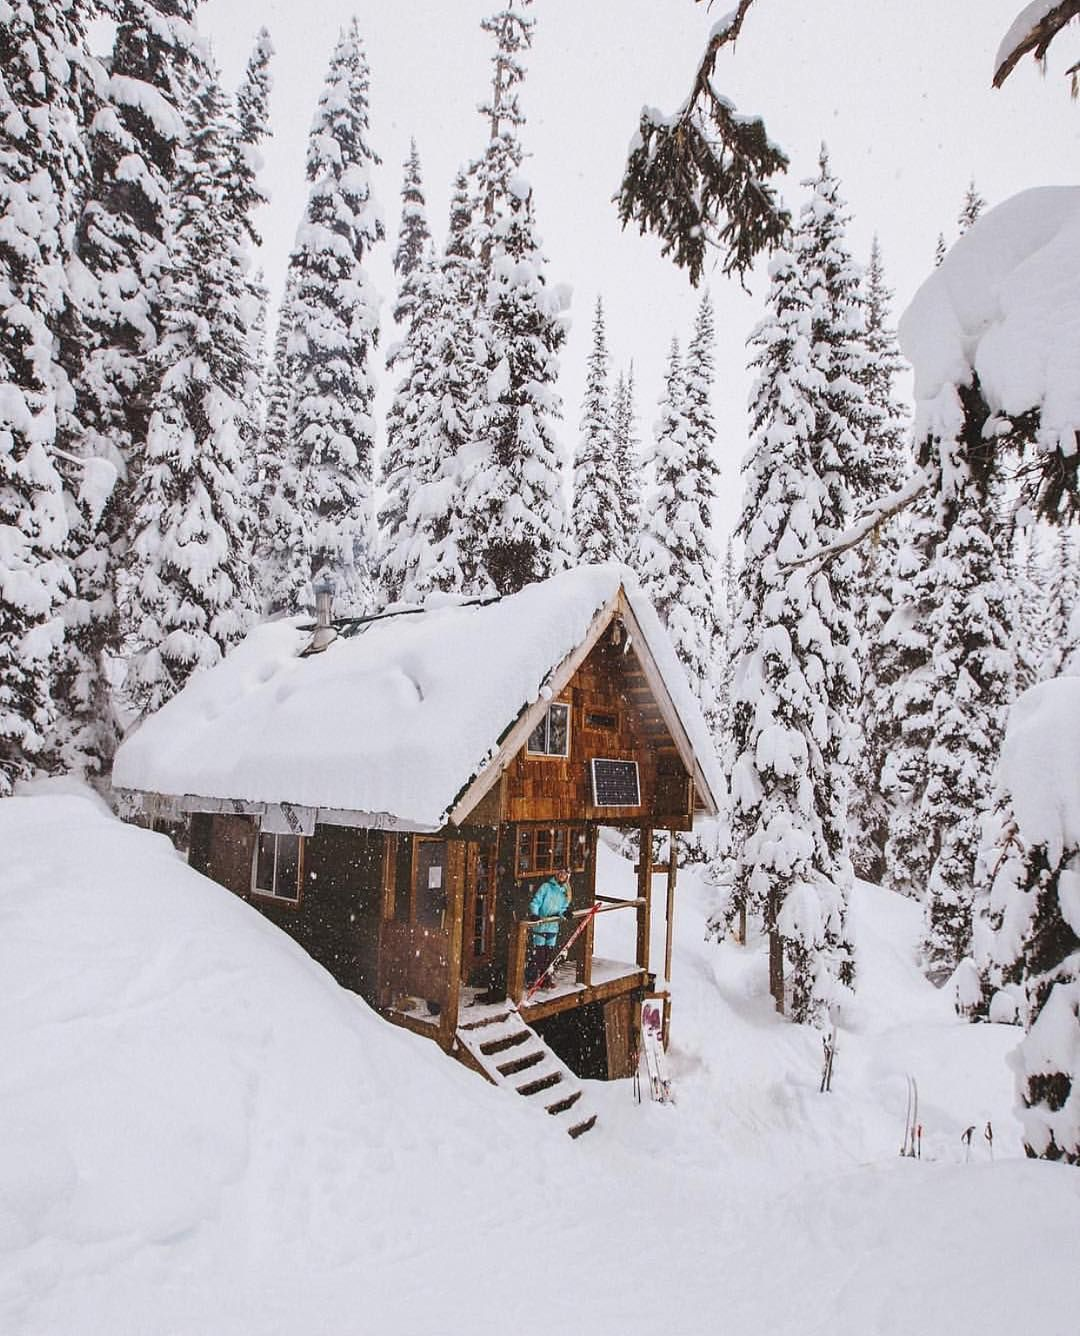 Thecabinland Bc Whistler Canada Snow Snowycabin Cabin